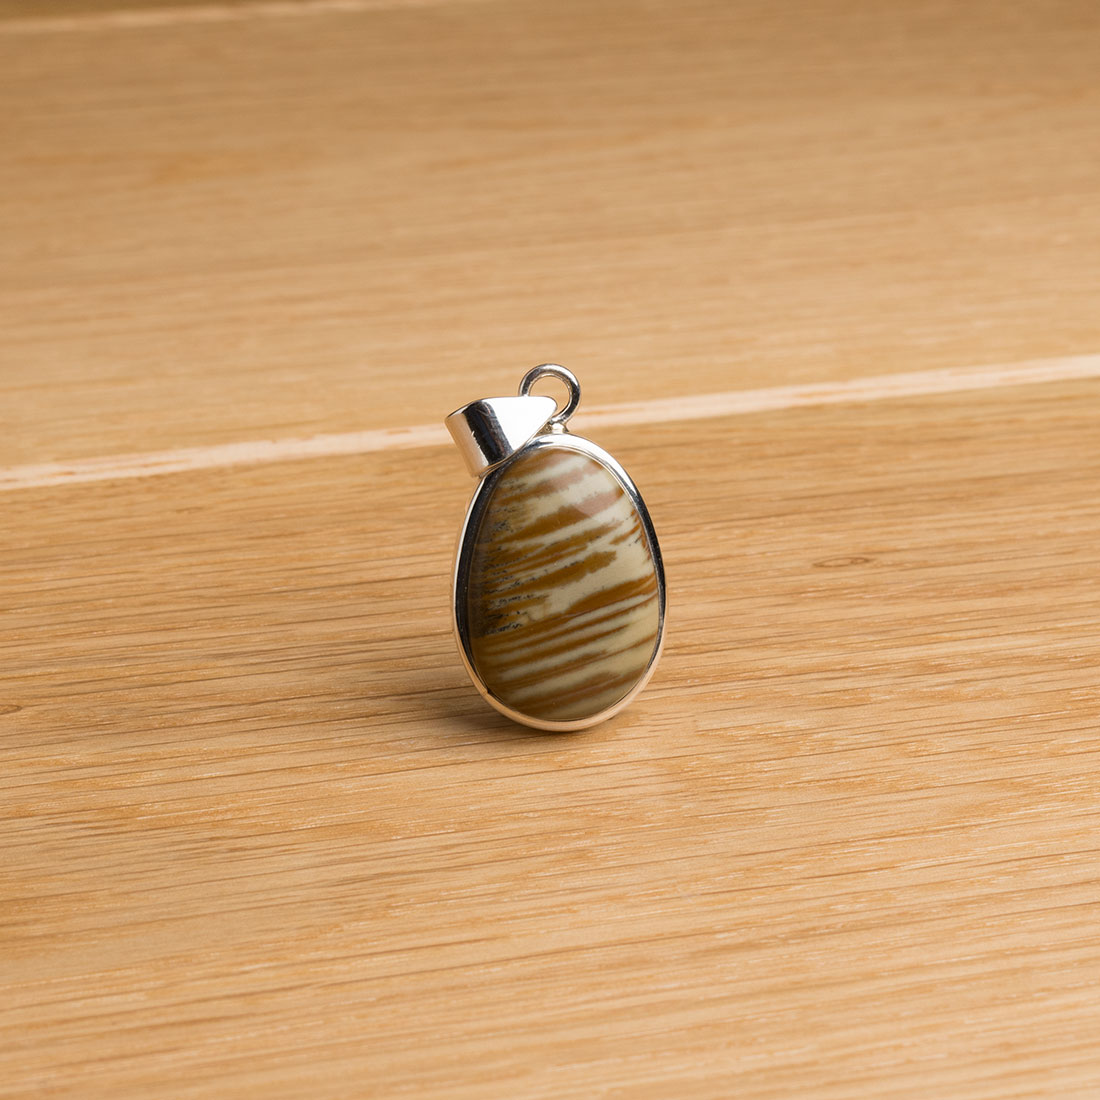 small oval shaped sterling silver pendant featuring a polished jasper cabochon